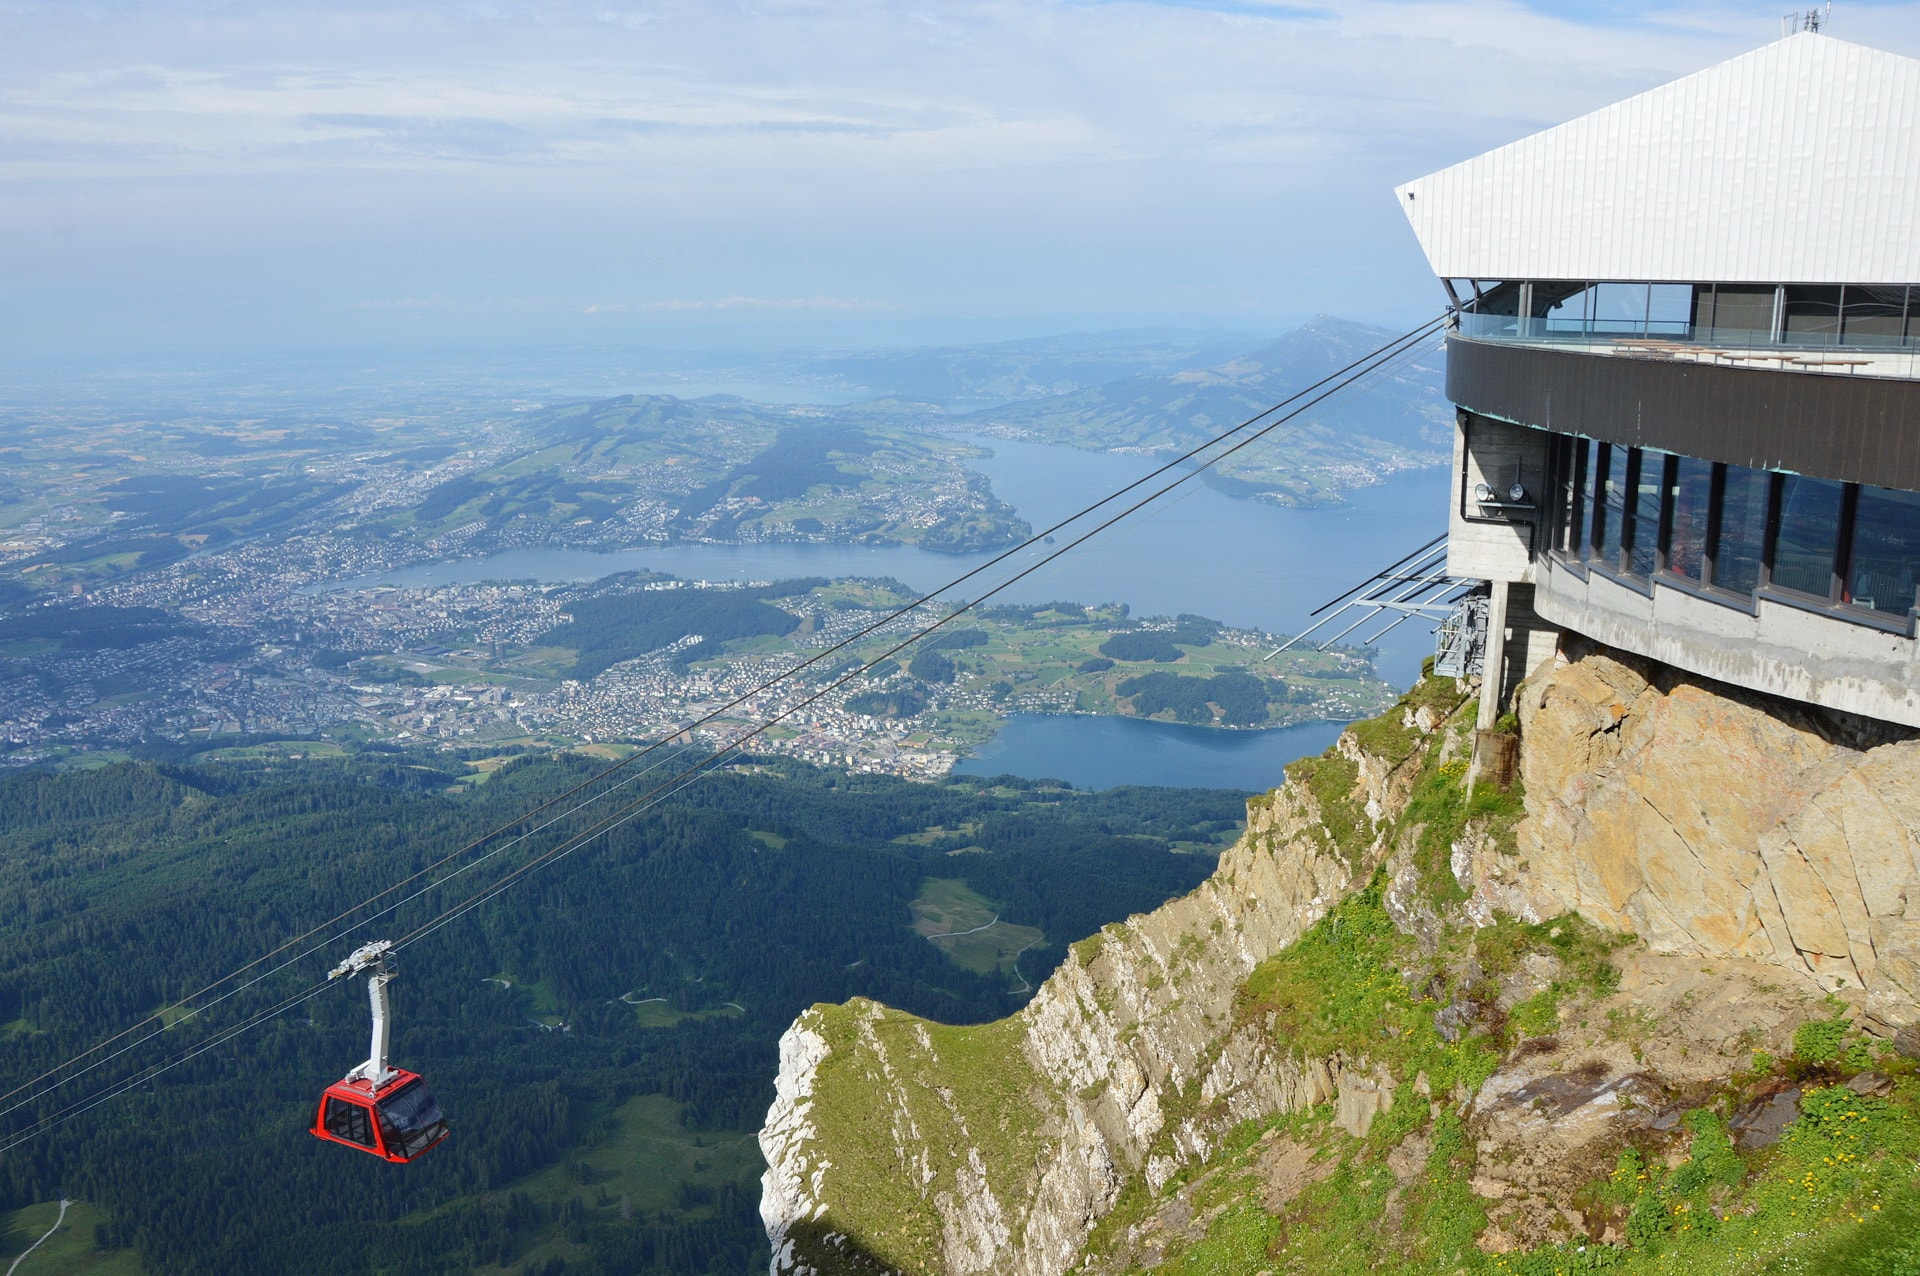 Cableway station on the top